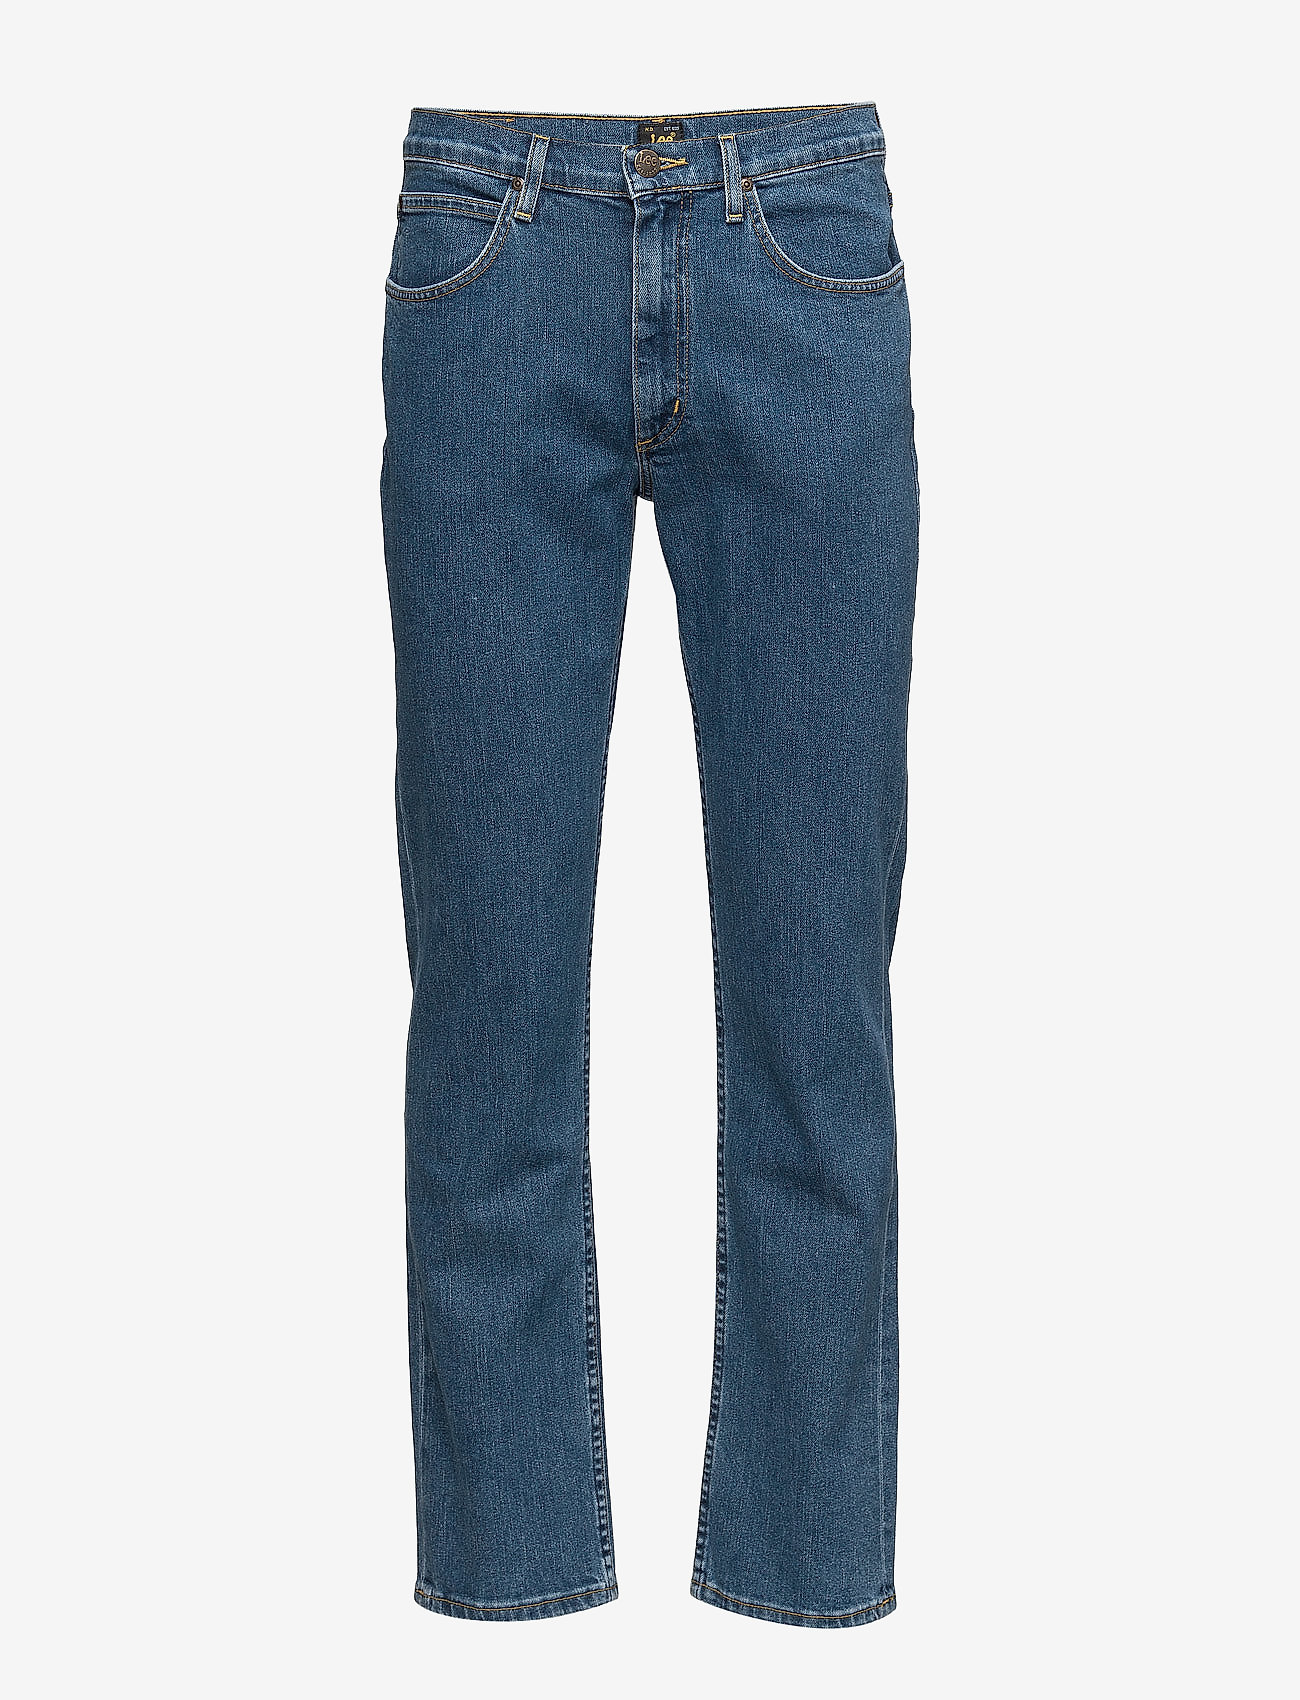 Lee Jeans - BROOKLYN STRAIGHT - relaxed jeans - mid stonewash - 0